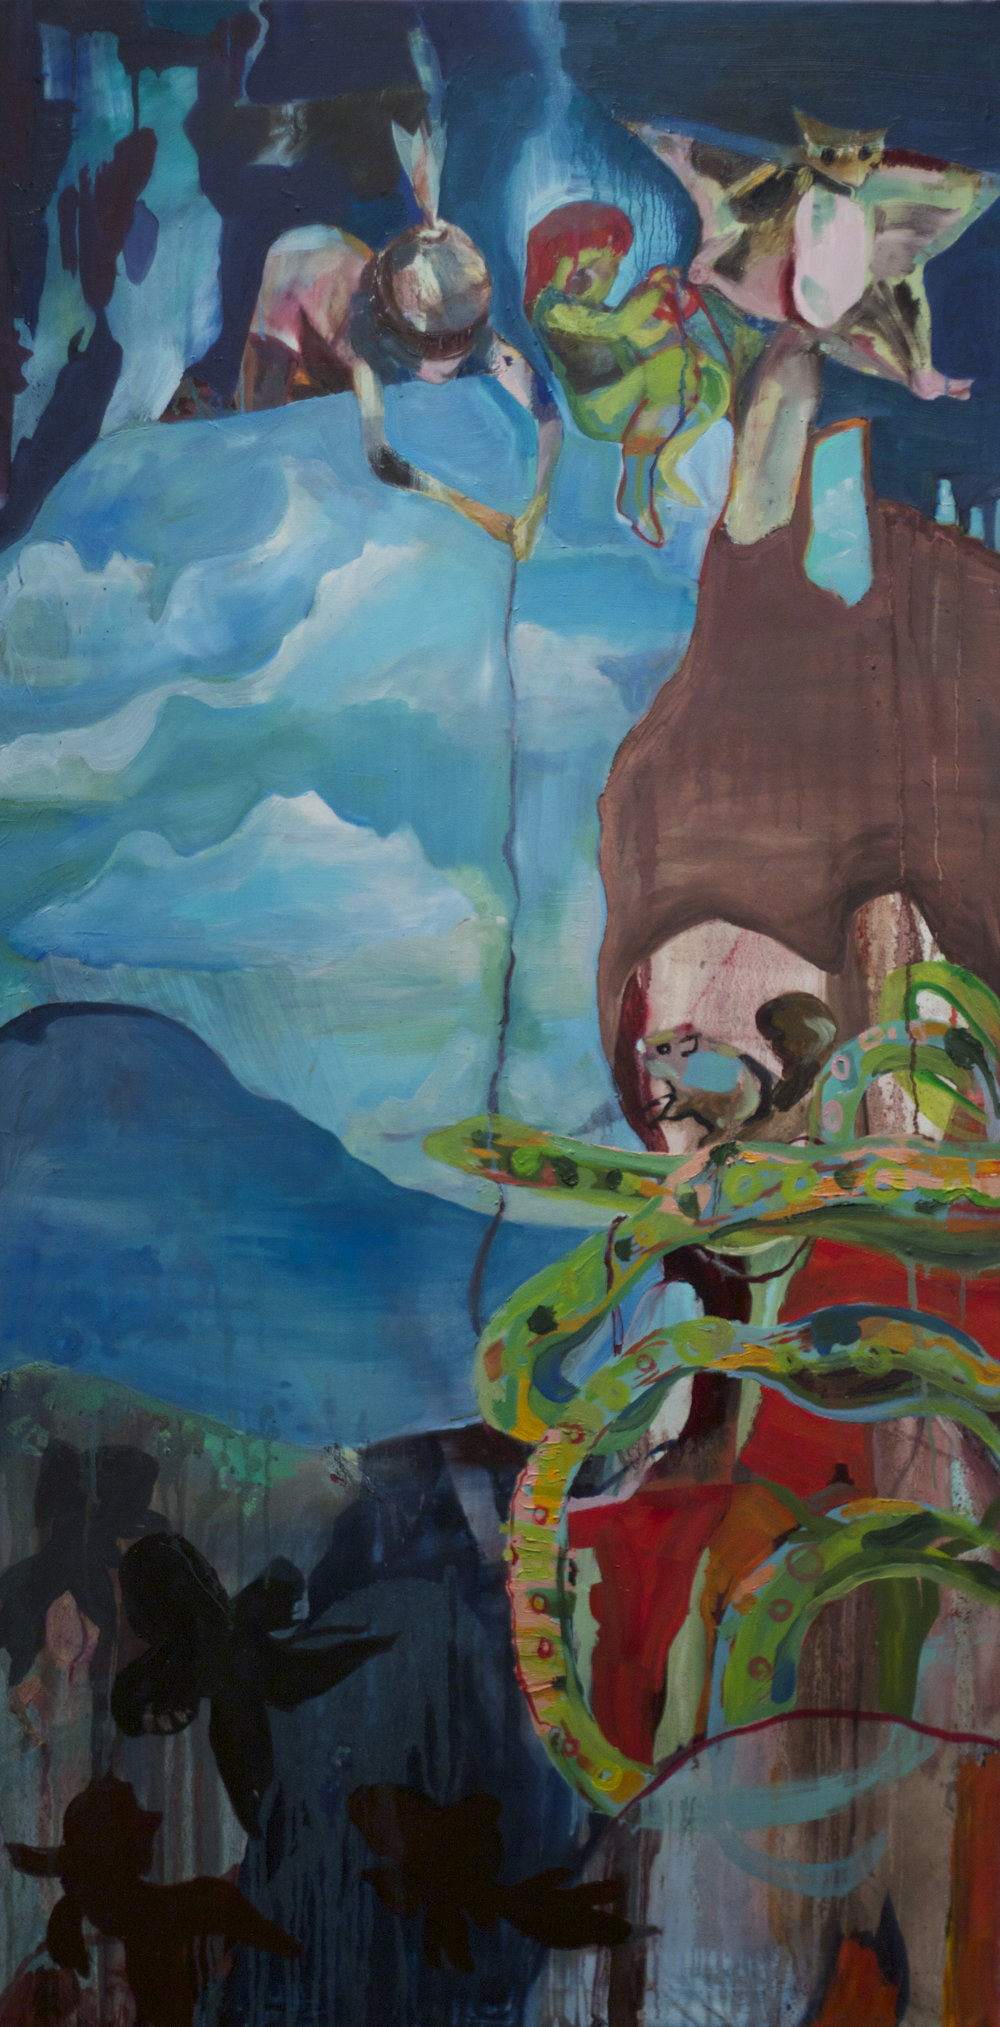 kites, oil on linen, 5' by 2 1/2', 2011, $1000